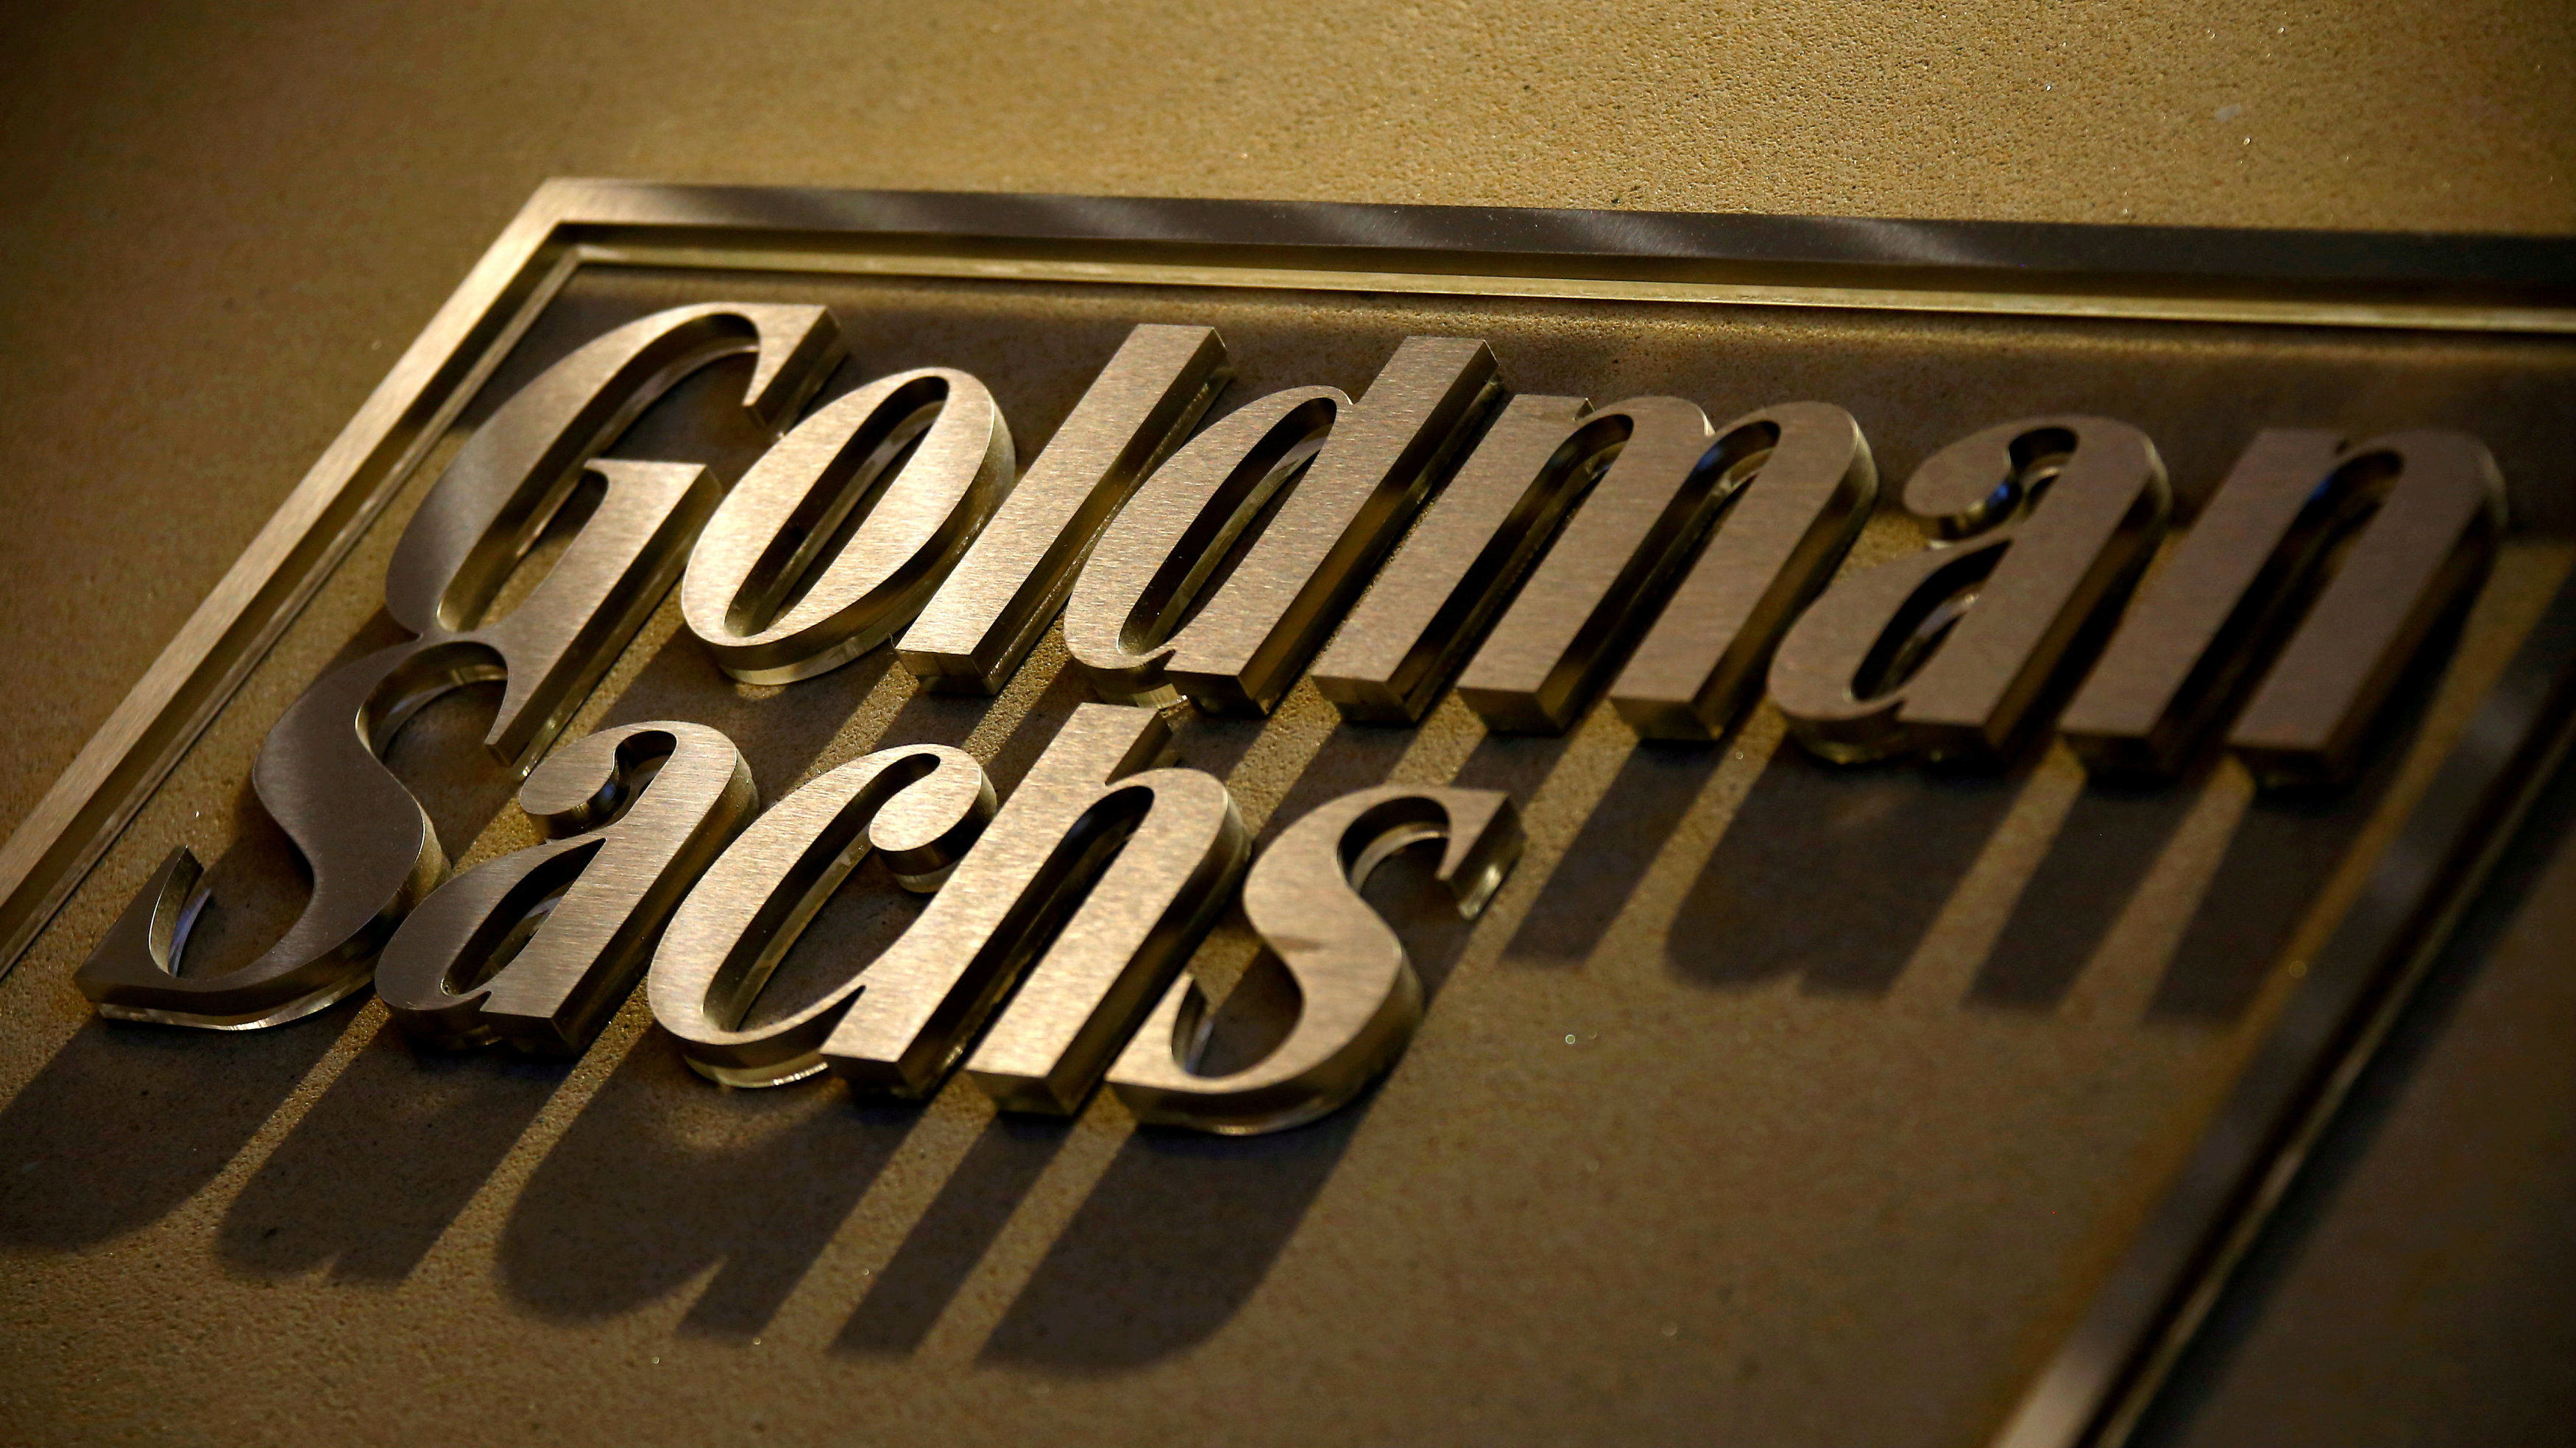 Goldman Sachs faces criminal charges in Malaysia over 1MDB scandal